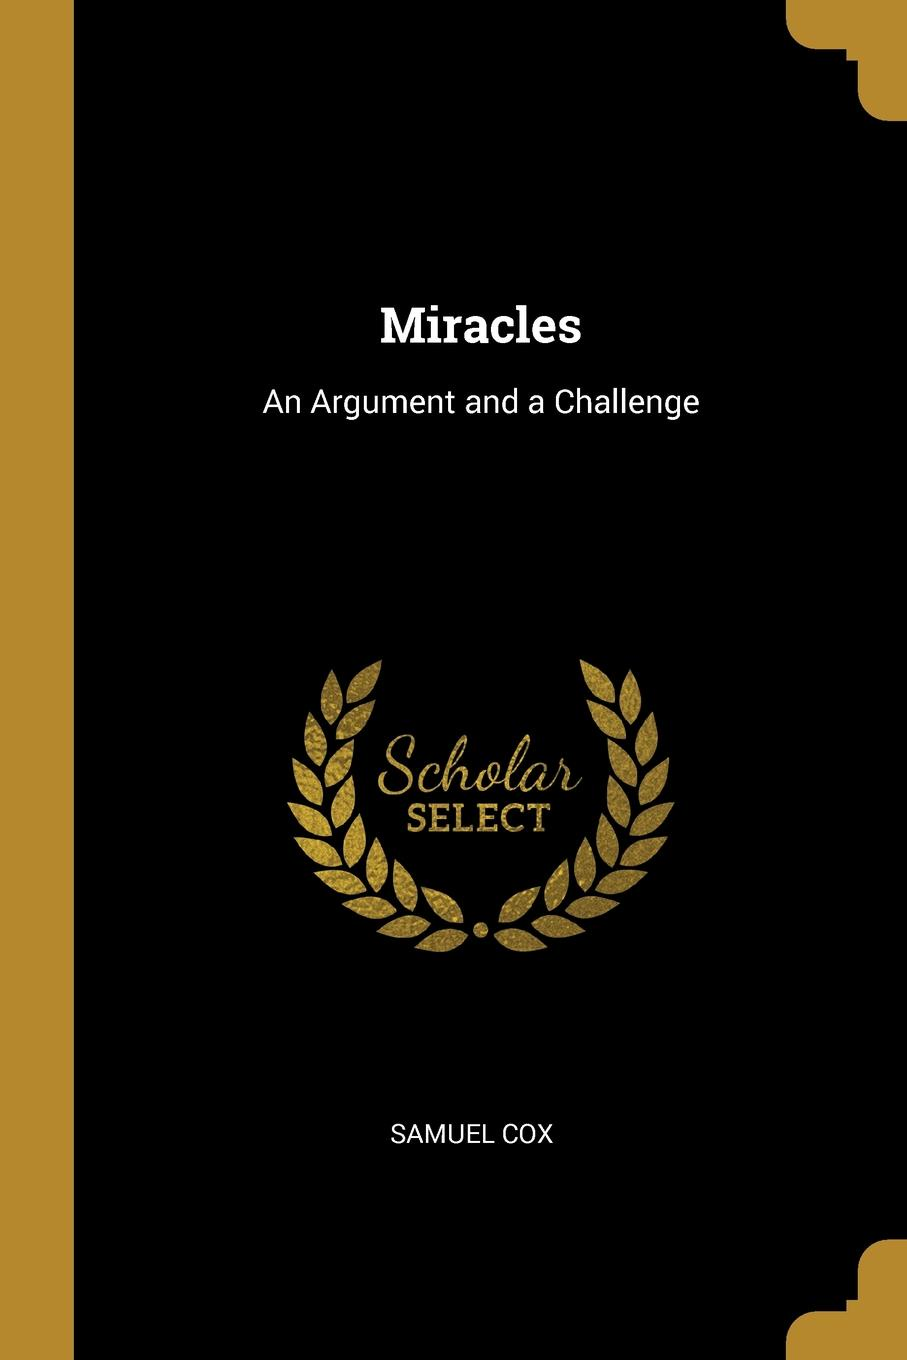 Samuel Cox. Miracles. An Argument and a Challenge